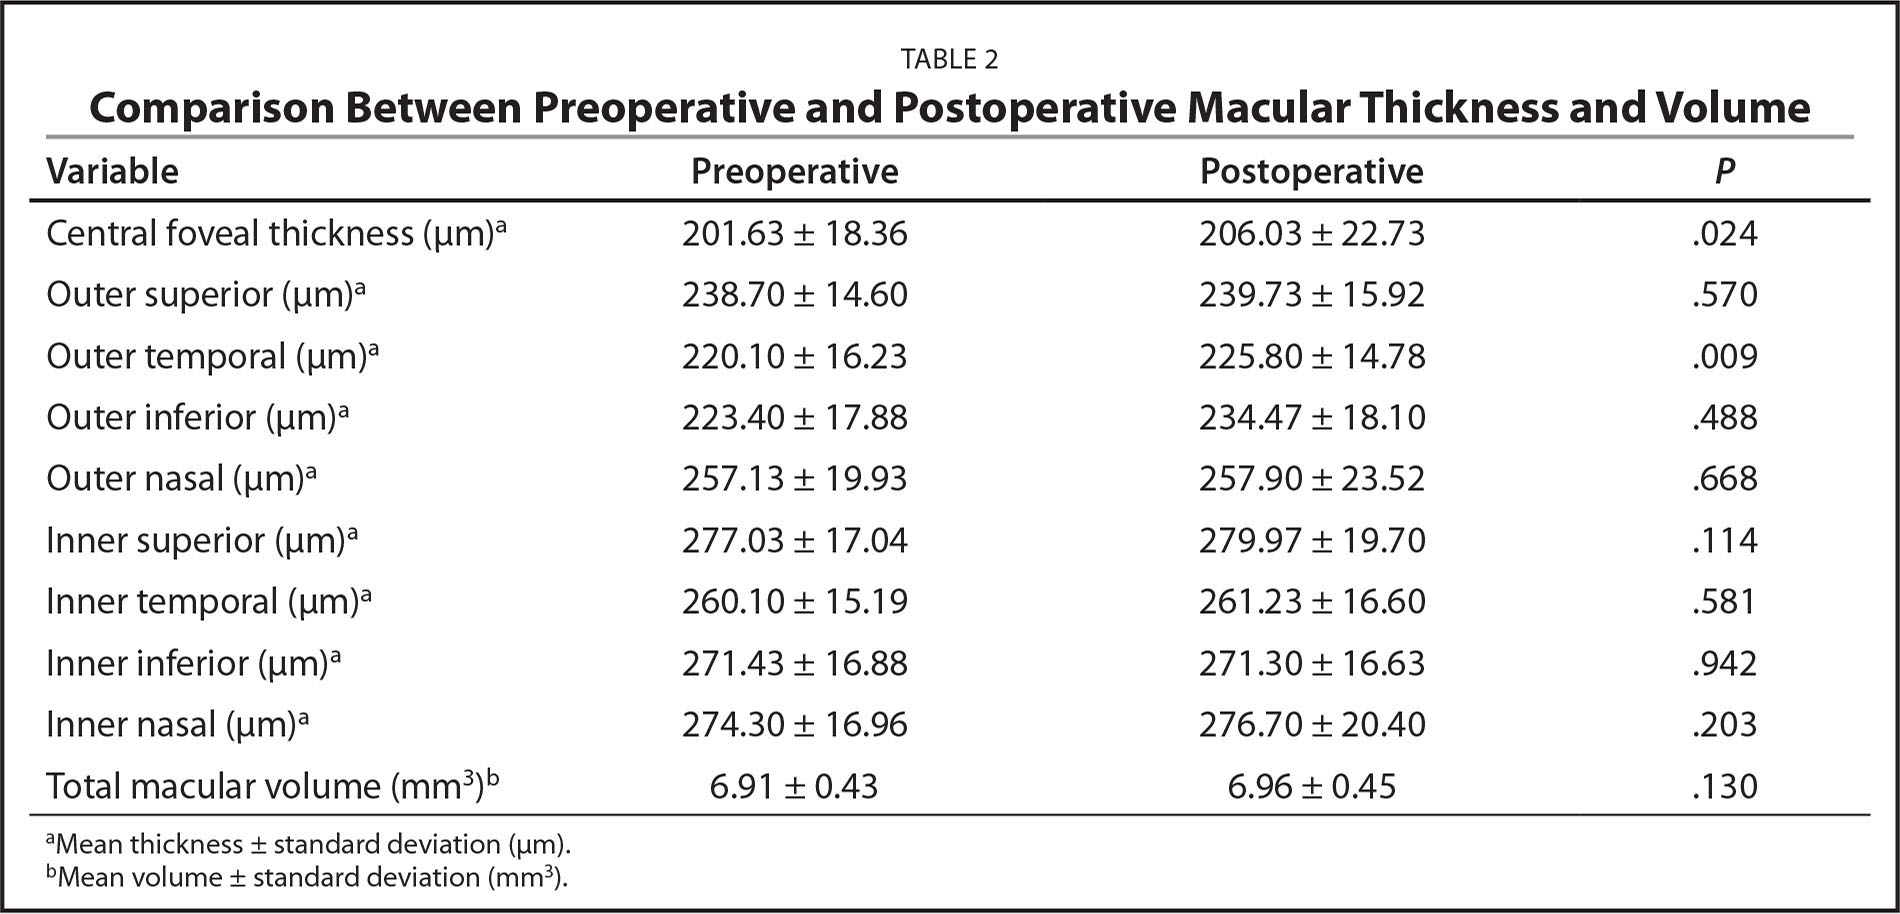 Comparison Between Preoperative and Postoperative Macular Thickness and Volume